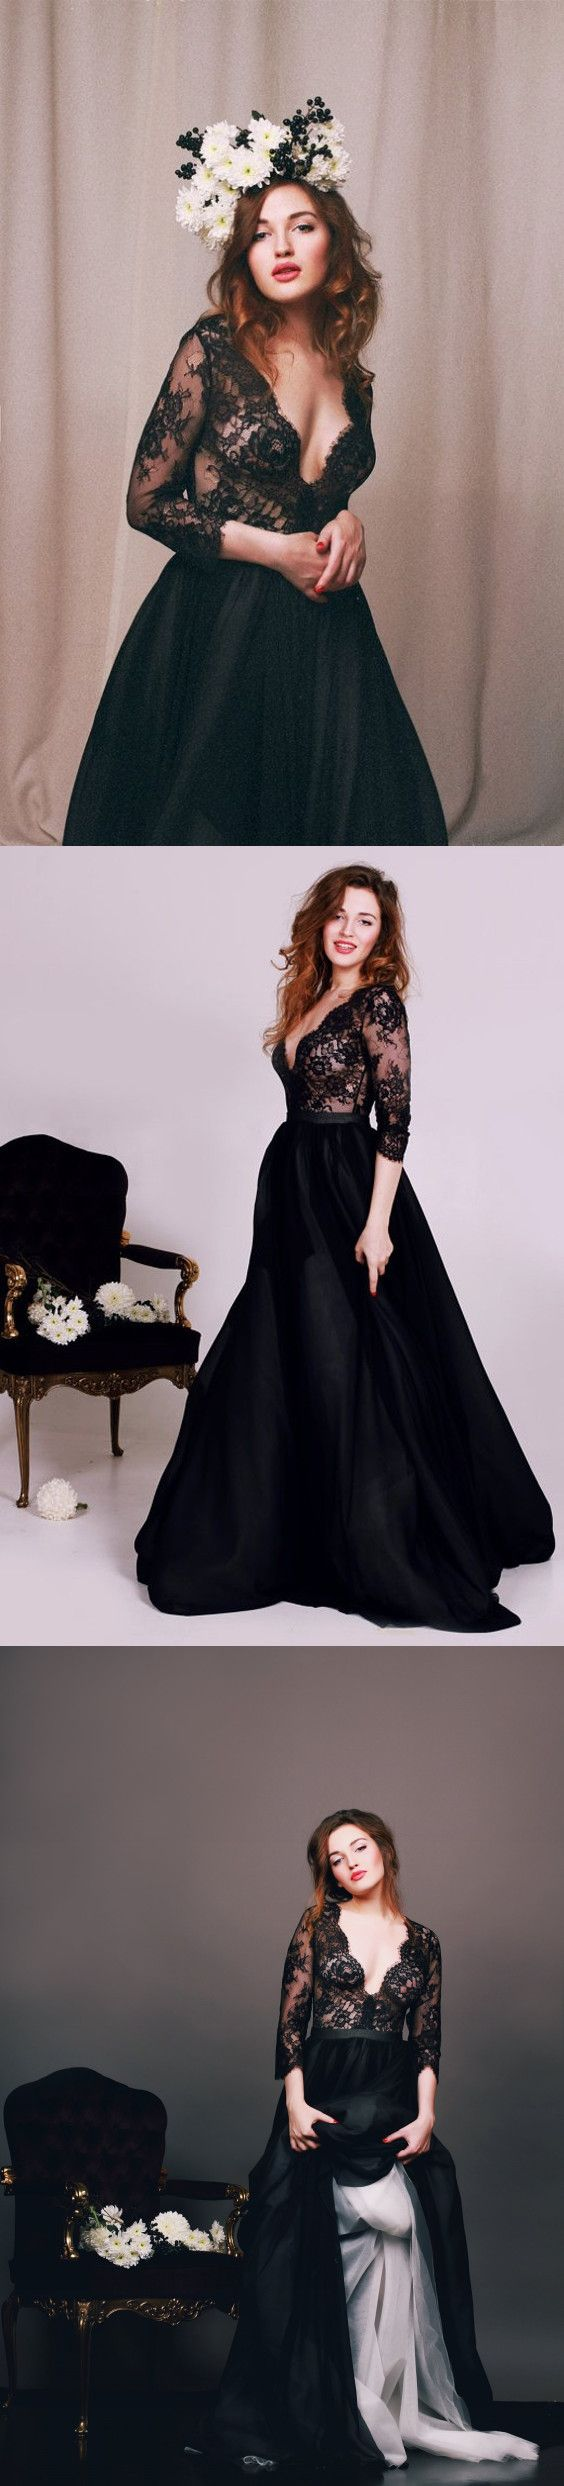 Black Lace Prom Dresses Wedding Party Dresses Banquet Gowns ...